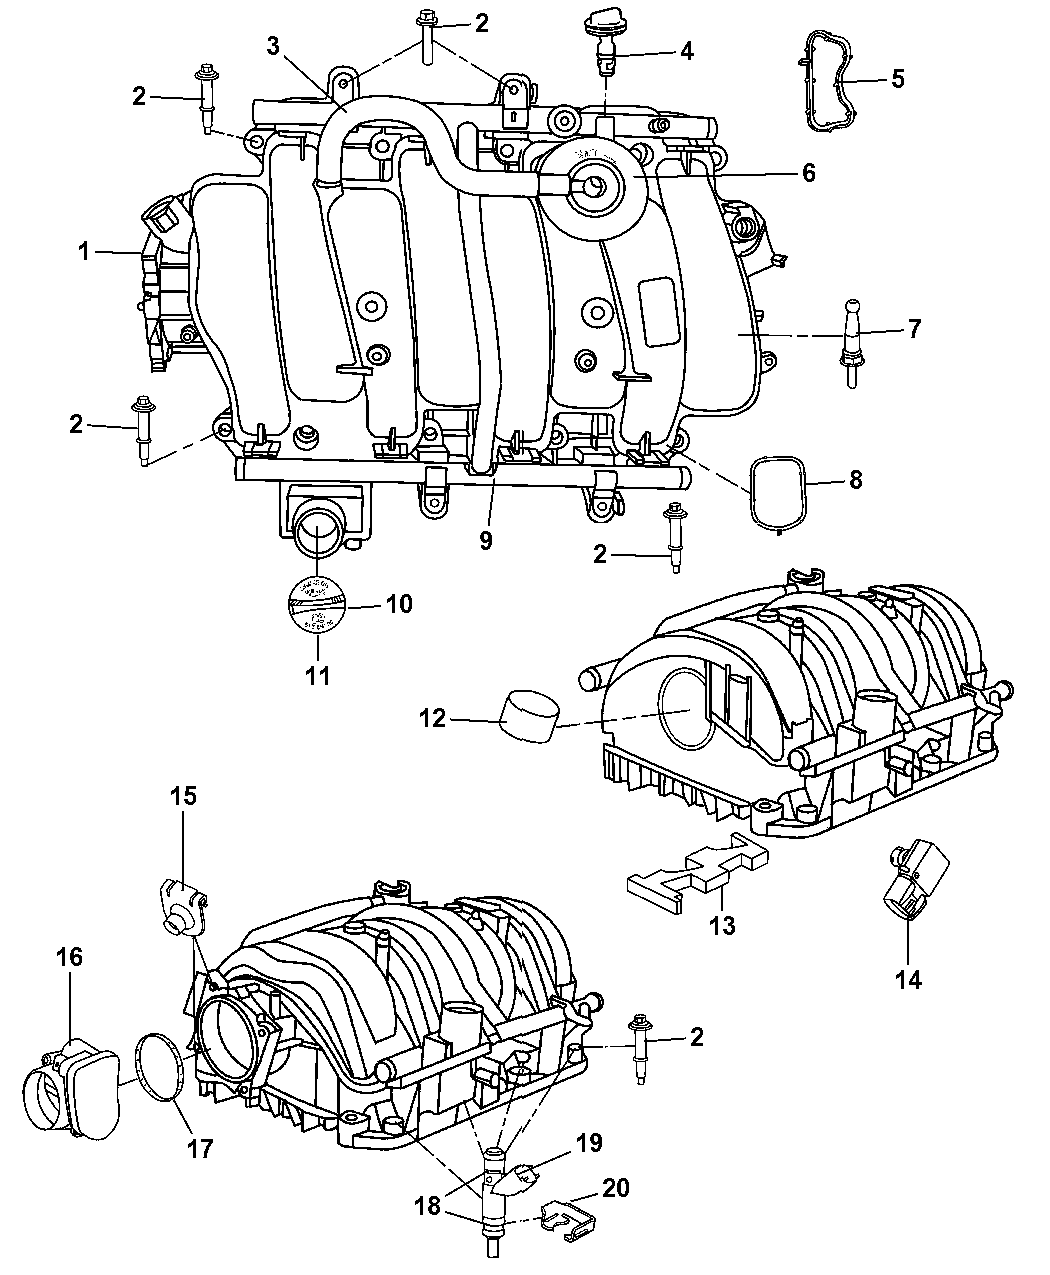 4897125aa - genuine mopar oring kit-fuel injector 91 chrysler throttle body diagram